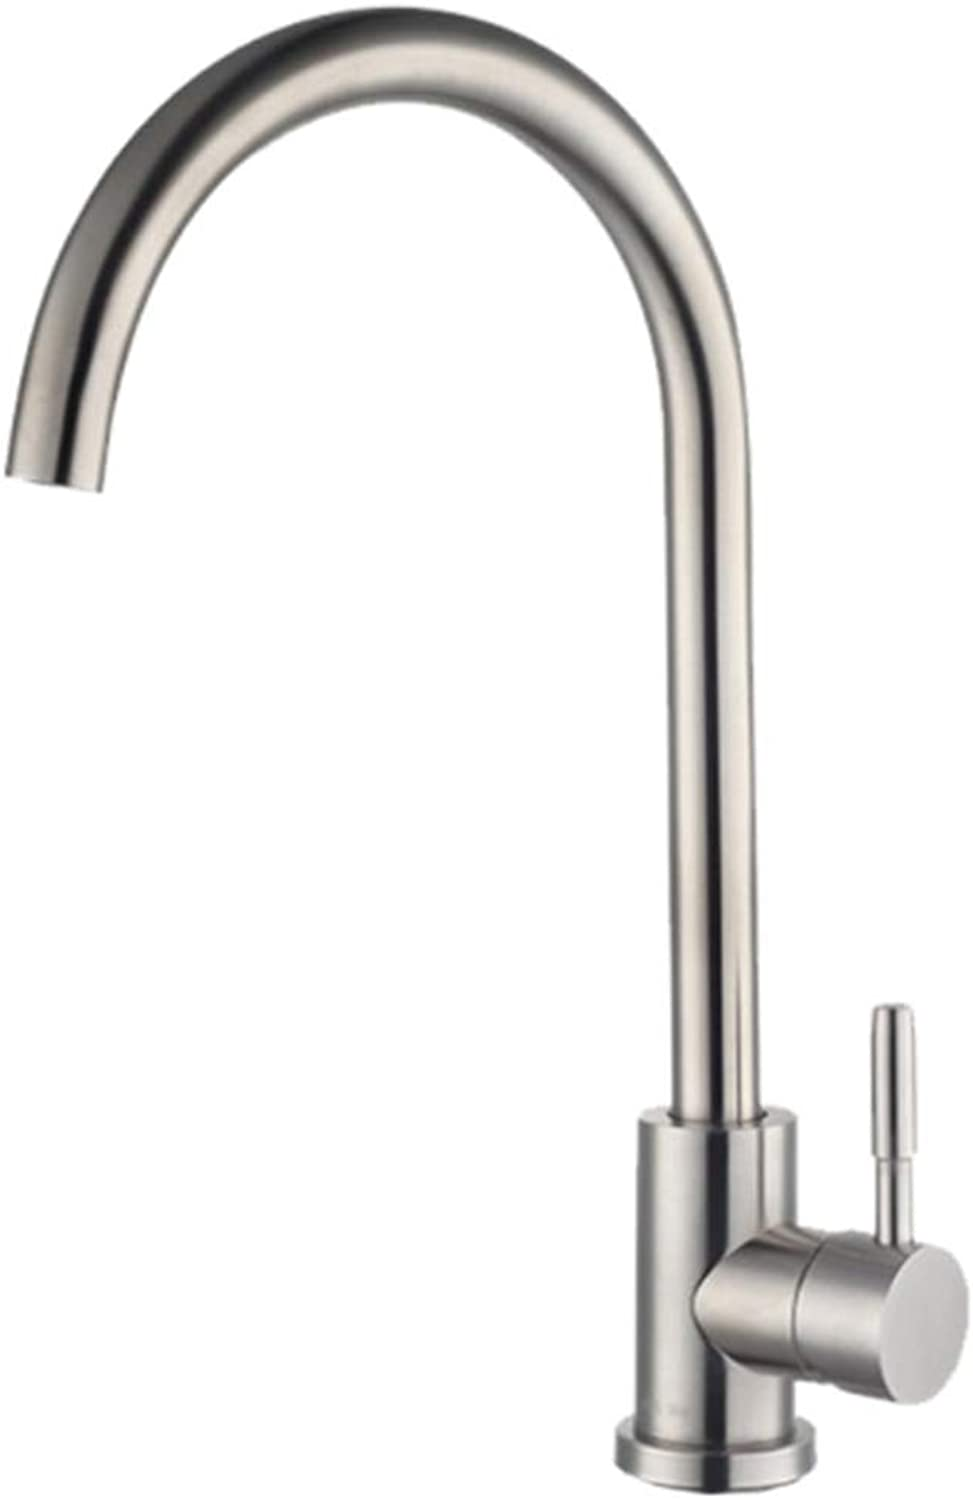 304 Stainless Steel Kitchen Faucet hot and Cold wash menu, Cold Water Faucet, Sink, Sink, Universal Swivel Faucet.